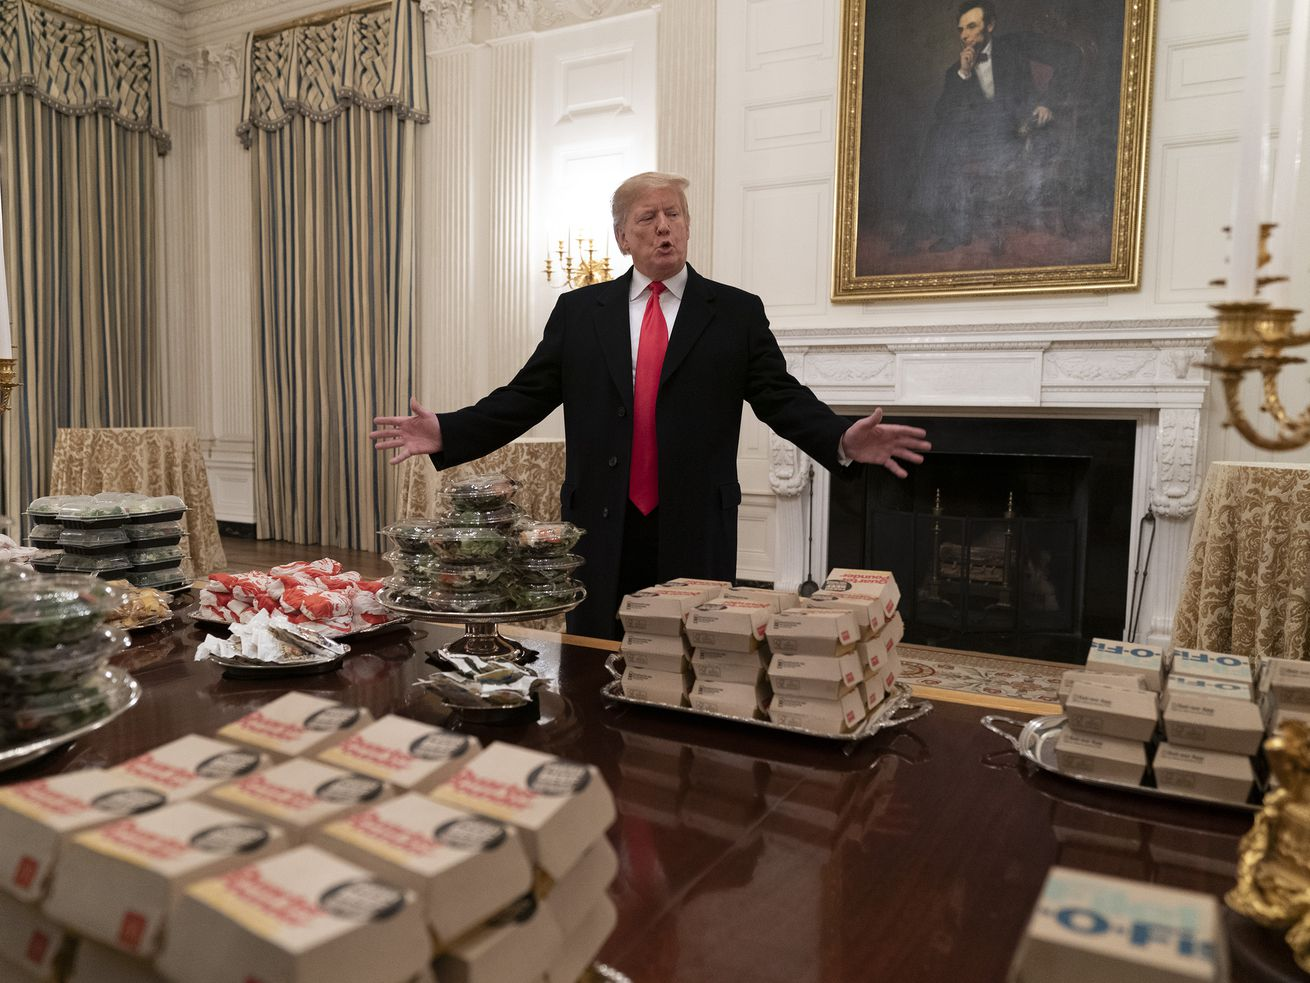 Trump presenting a buffet of fast food to be served to the Clemson Tigers football team.